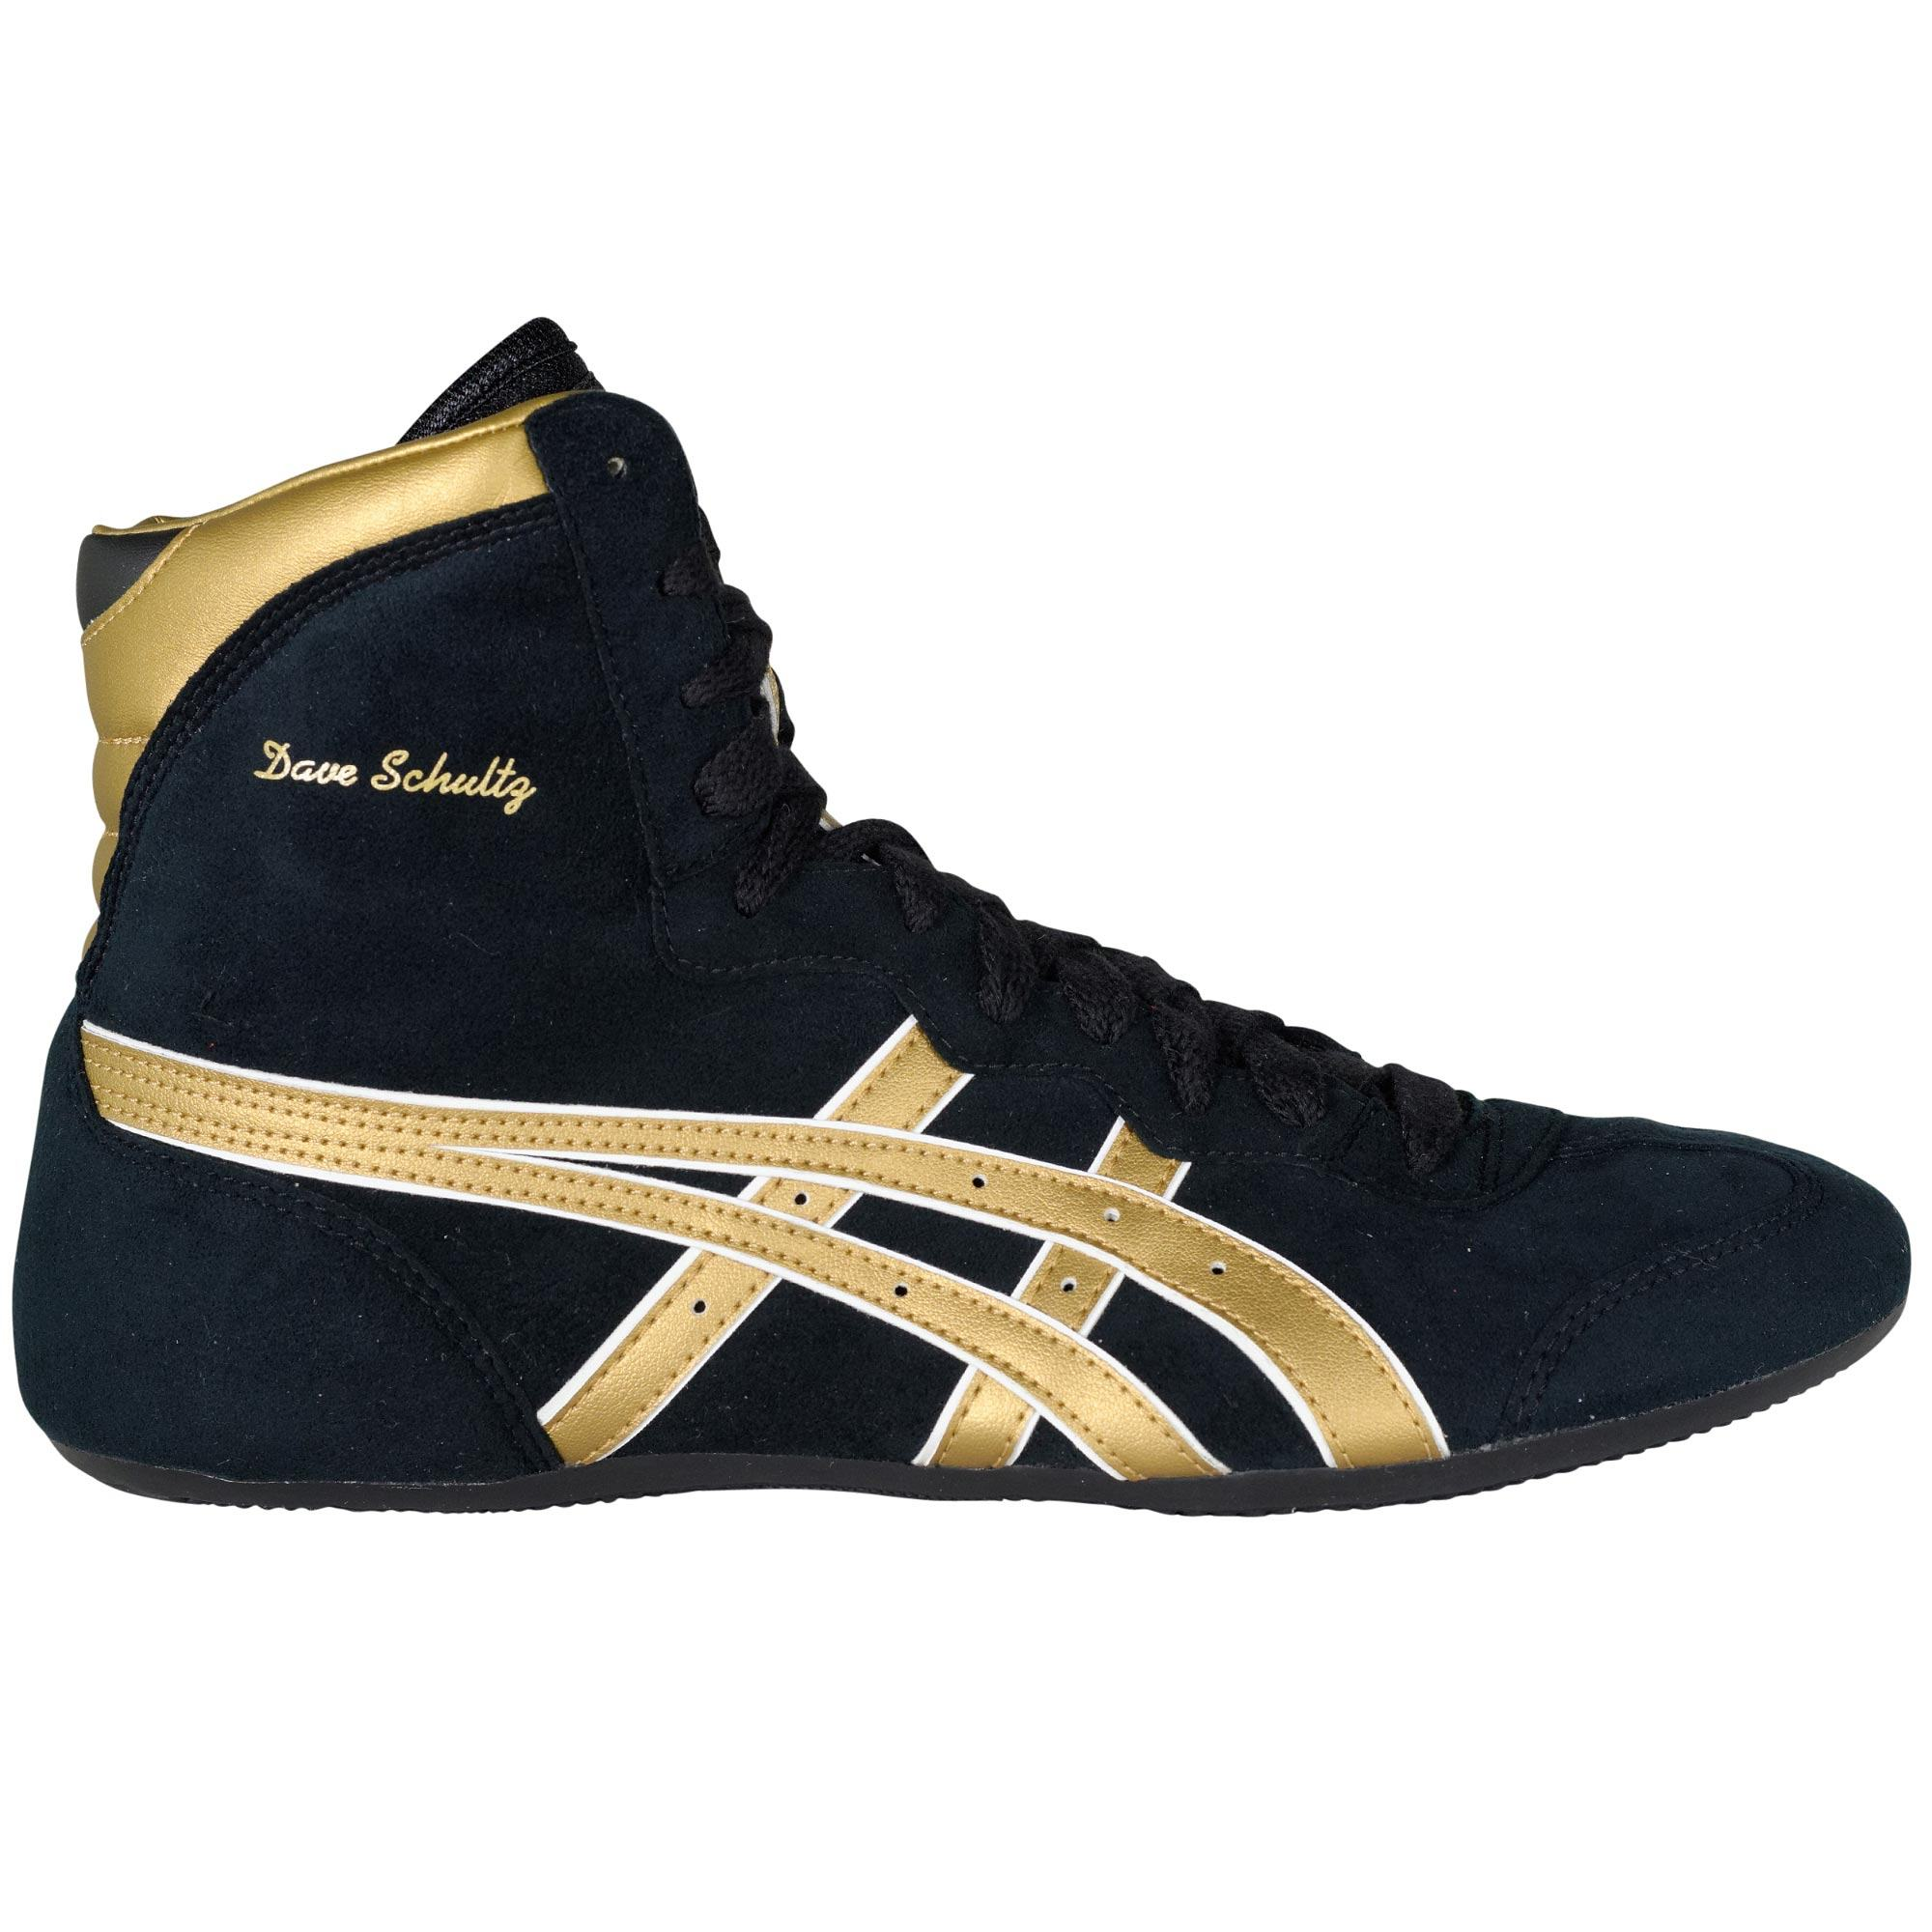 asics black and gold womens